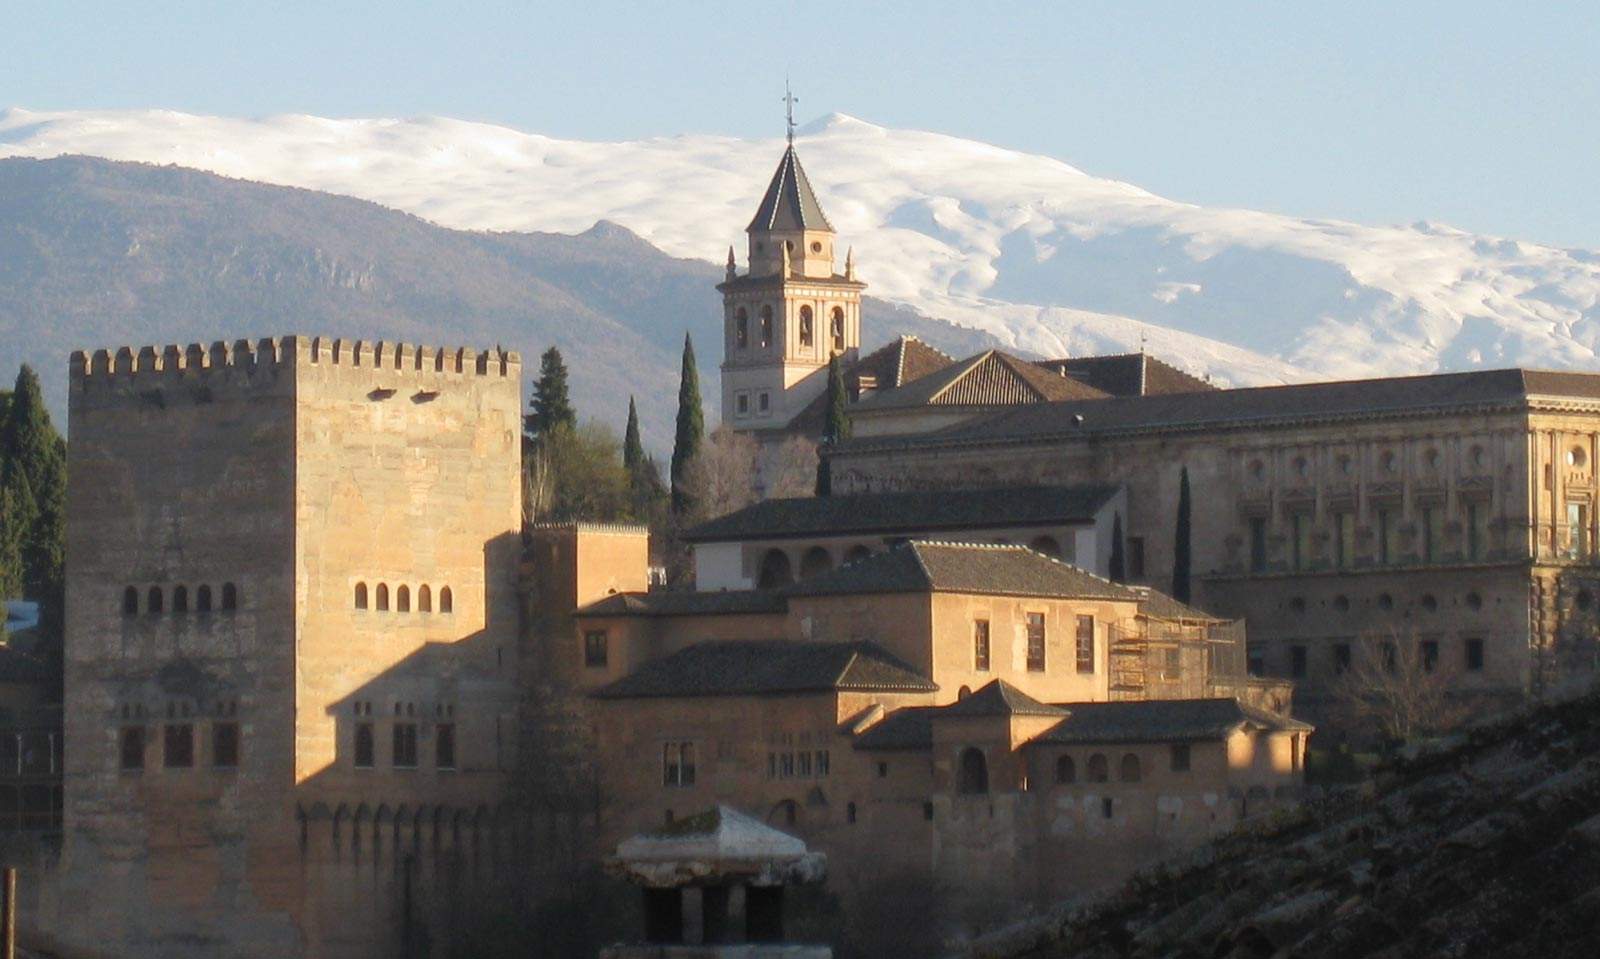 alhambra dating Alhambra (granada), spain  the alcazaba fortress is the oldest part of the alhambra complex, dating back to the 9th century and rebuilt since the maze-like ruins .